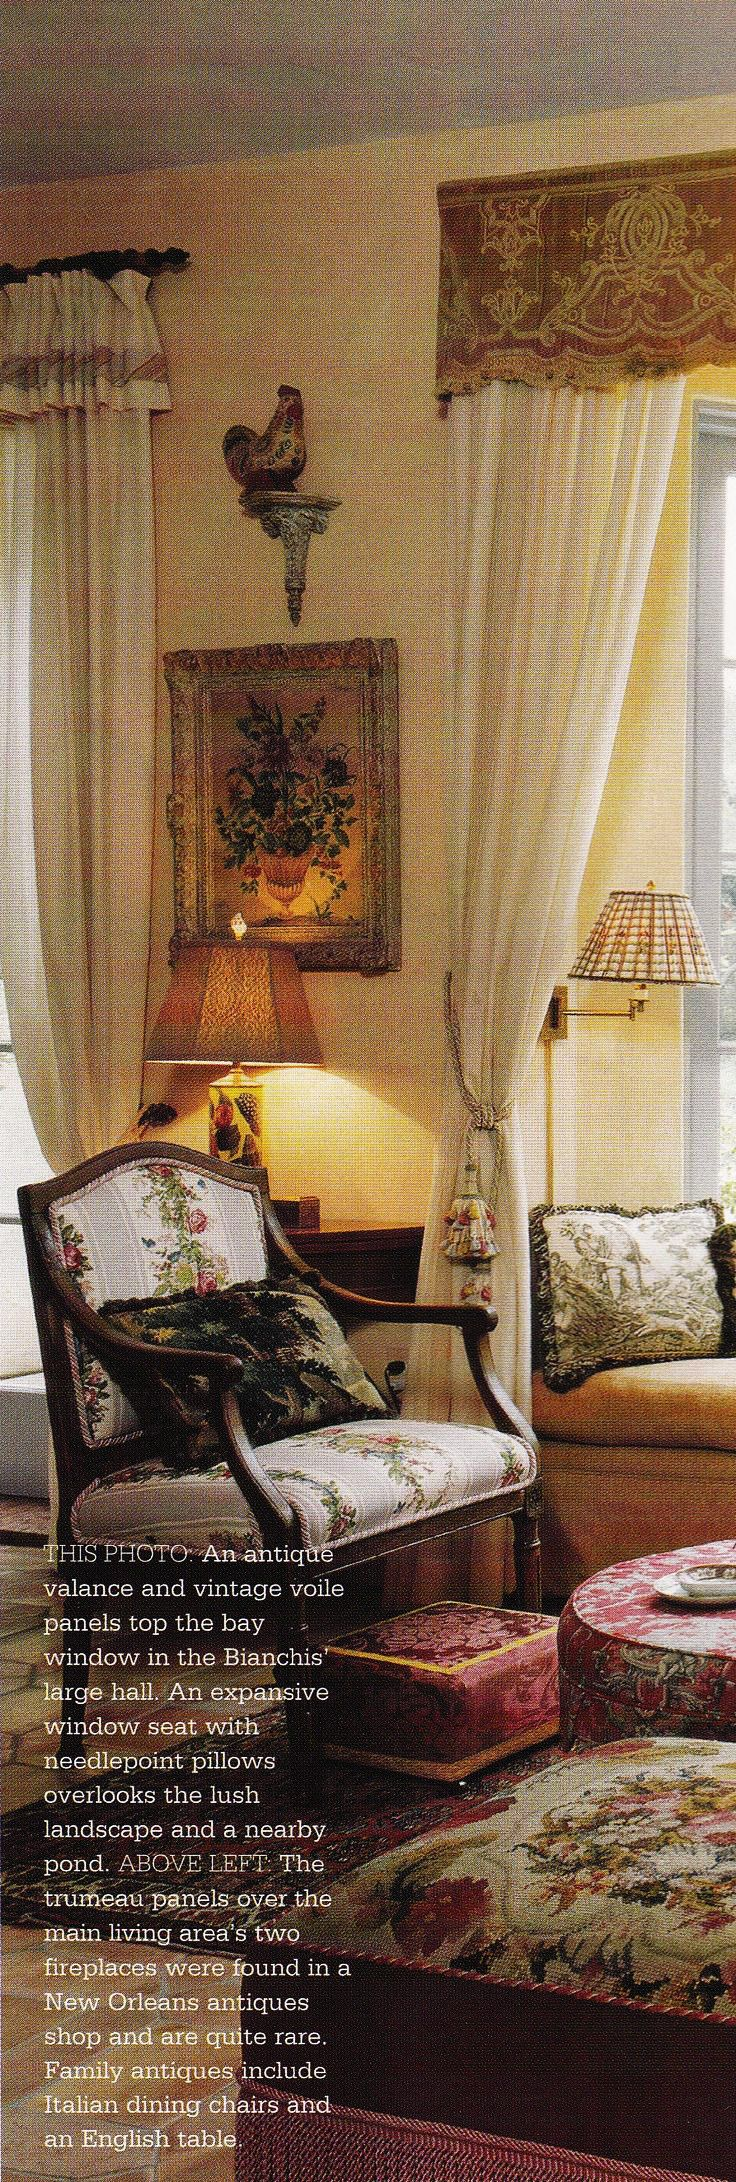 675 best images about french country decor on